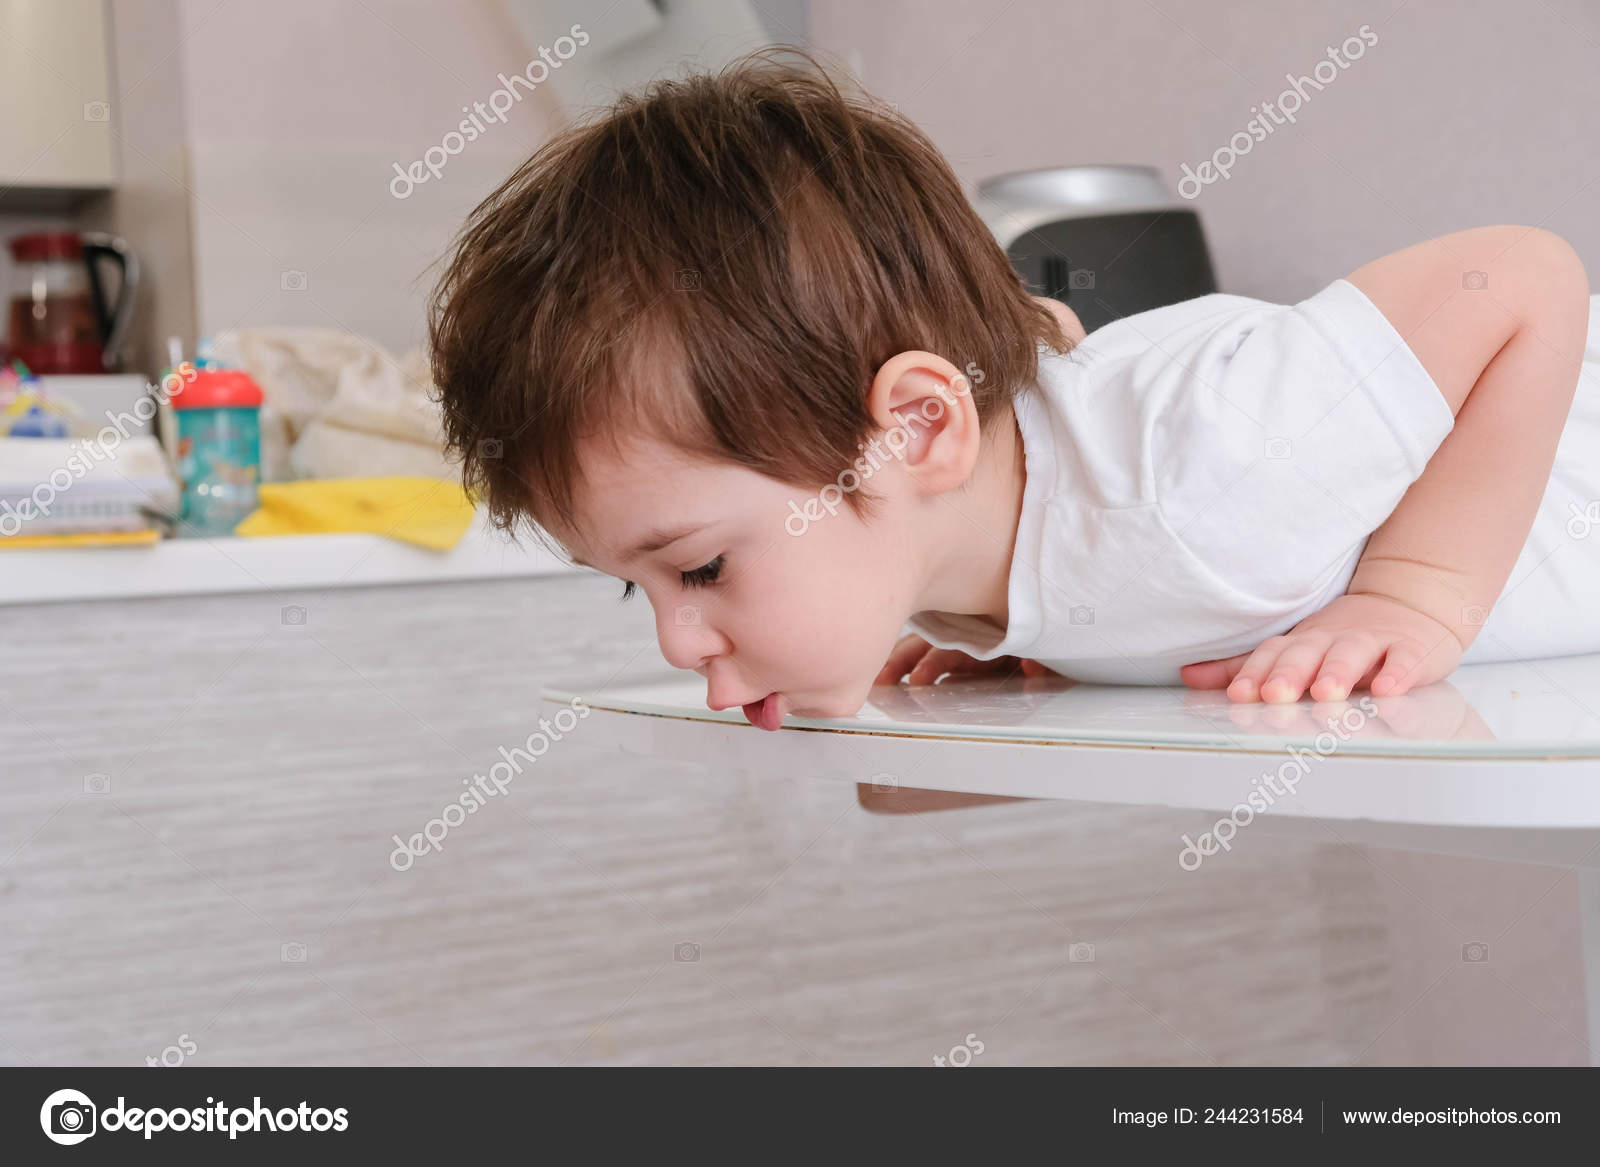 de96fa33b Surprised Kid Sitting Table Child Eyes Widened Mouth Opened ...